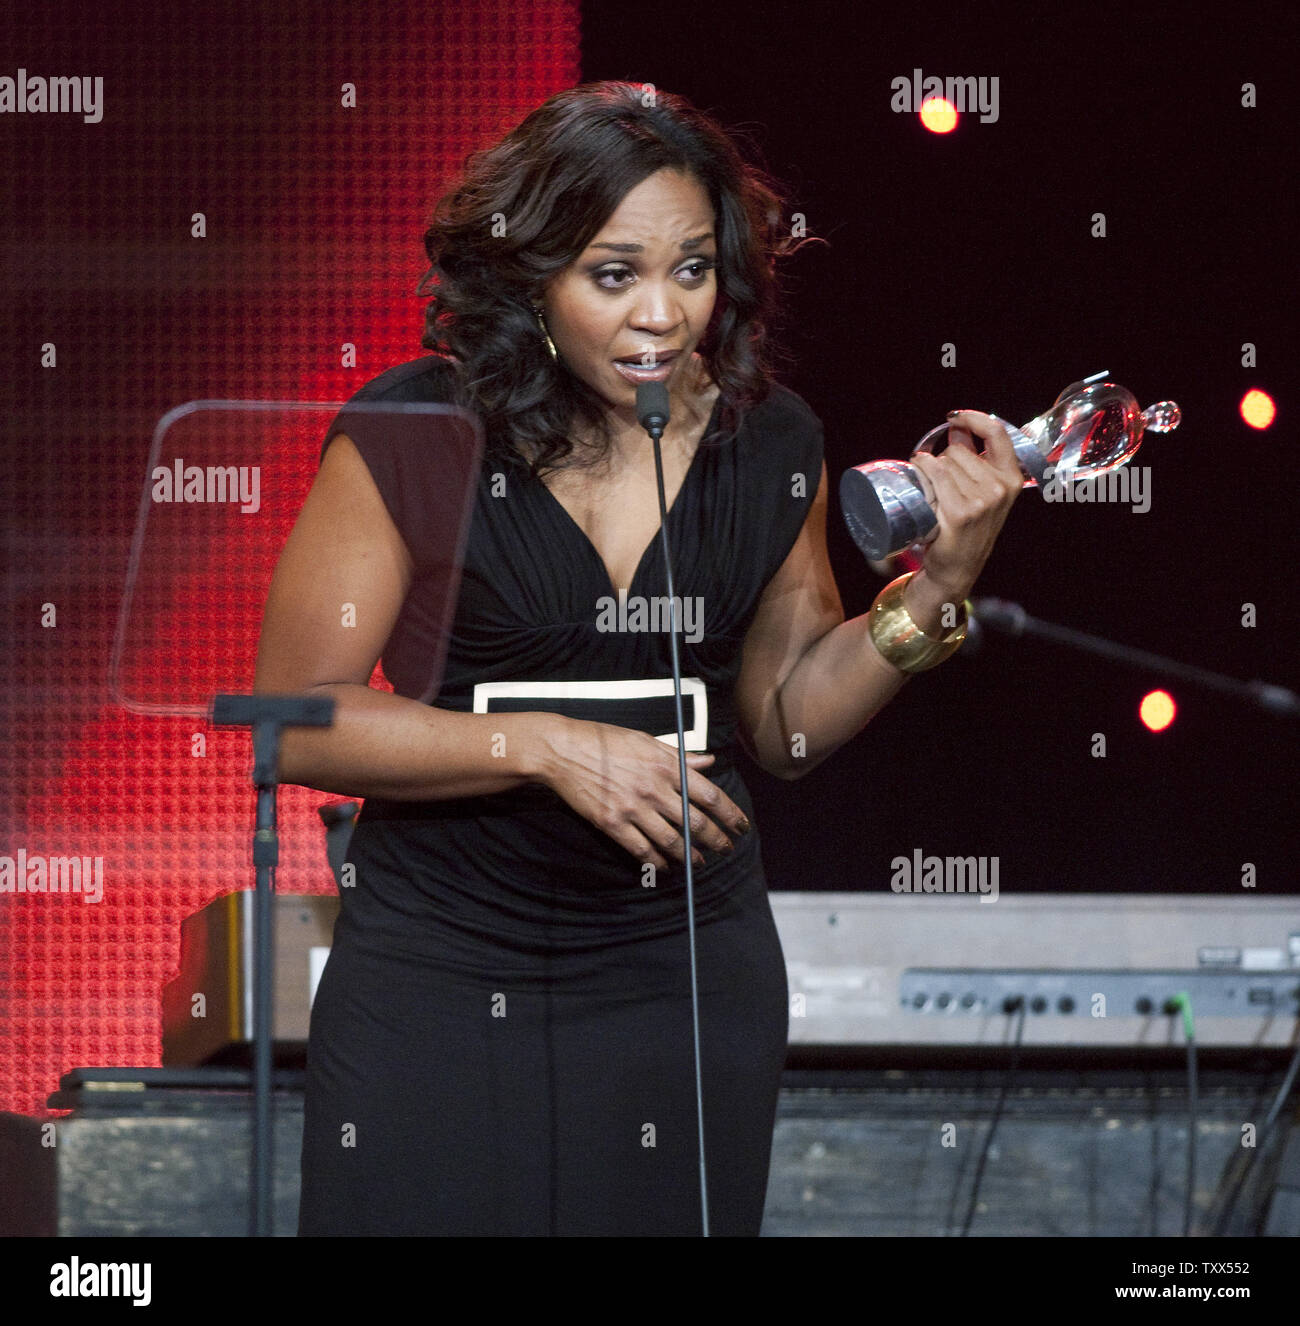 A tearful Divine Brown celebrates winning the R&B/Soul Recording of the Year award at the 2009 JUNO Gala Dinner and Awards at the Westin Bayshore Hotel in Vancouver, British Columbia, March 28, 2009. (UPI Photo/Heinz Ruckemann) - Stock Image